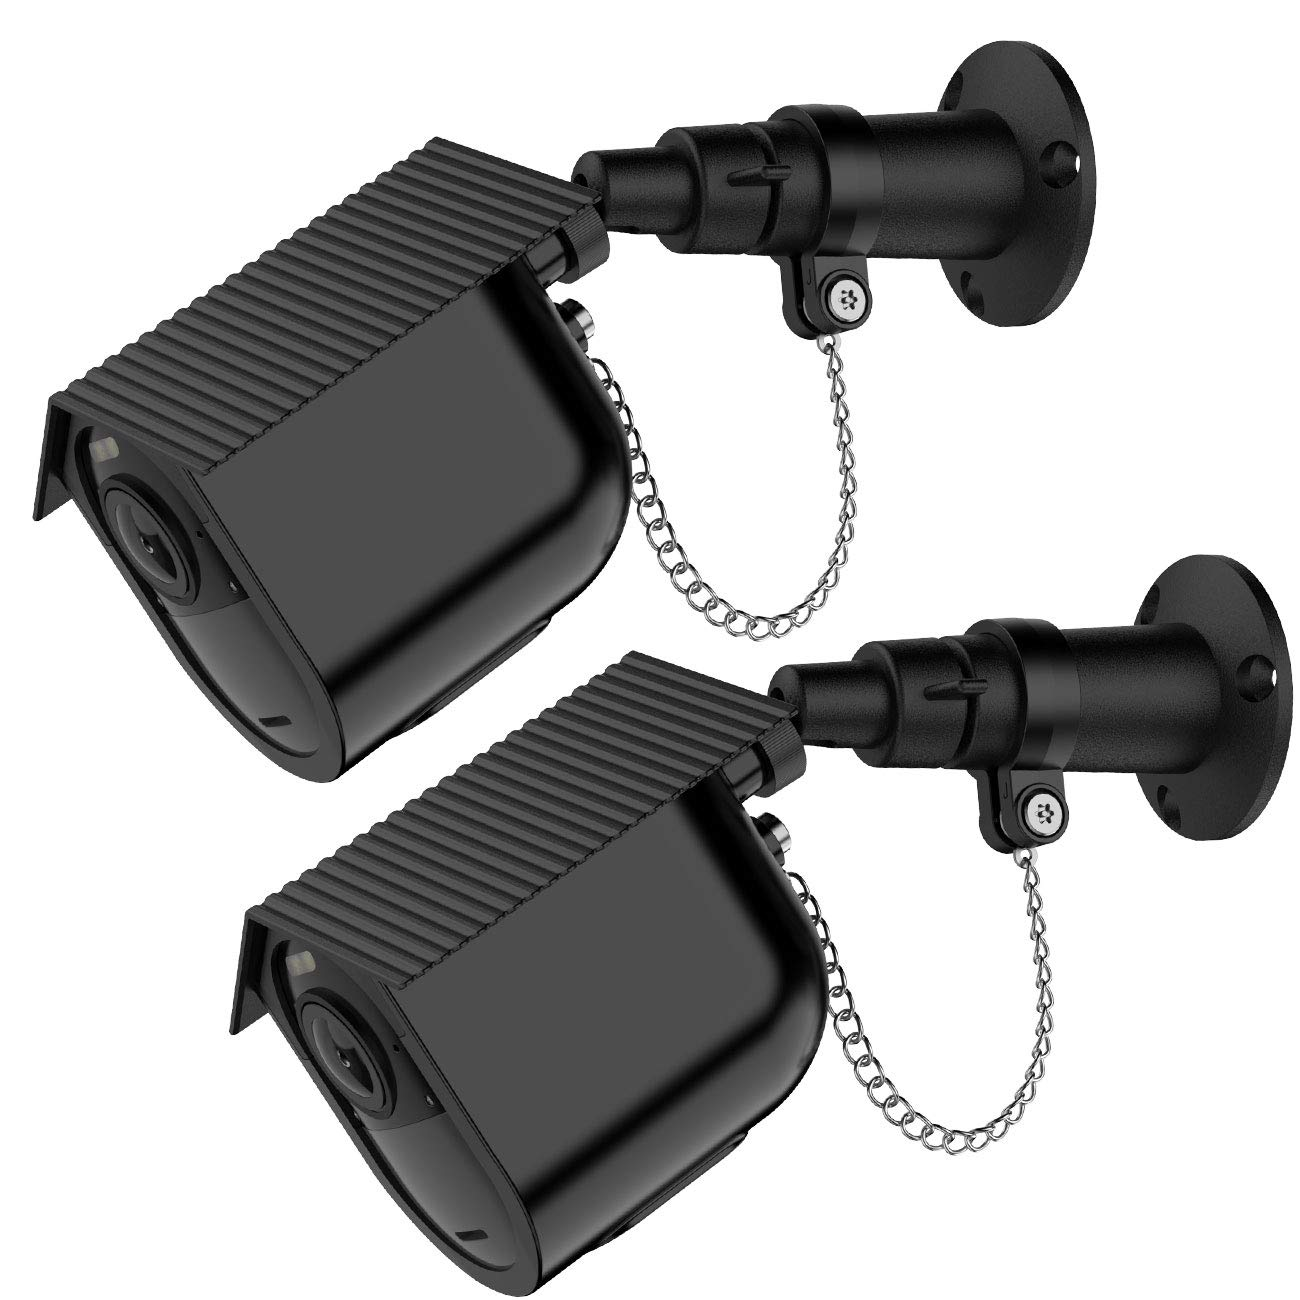 Koroao Security Outdoor Mount Only for Arlo Ultra with Anti-Theft Chain + Weatherproof Housing - Silicone Protective Case-Extra Protection for Your Arlo Camera (2-Pack, Black)